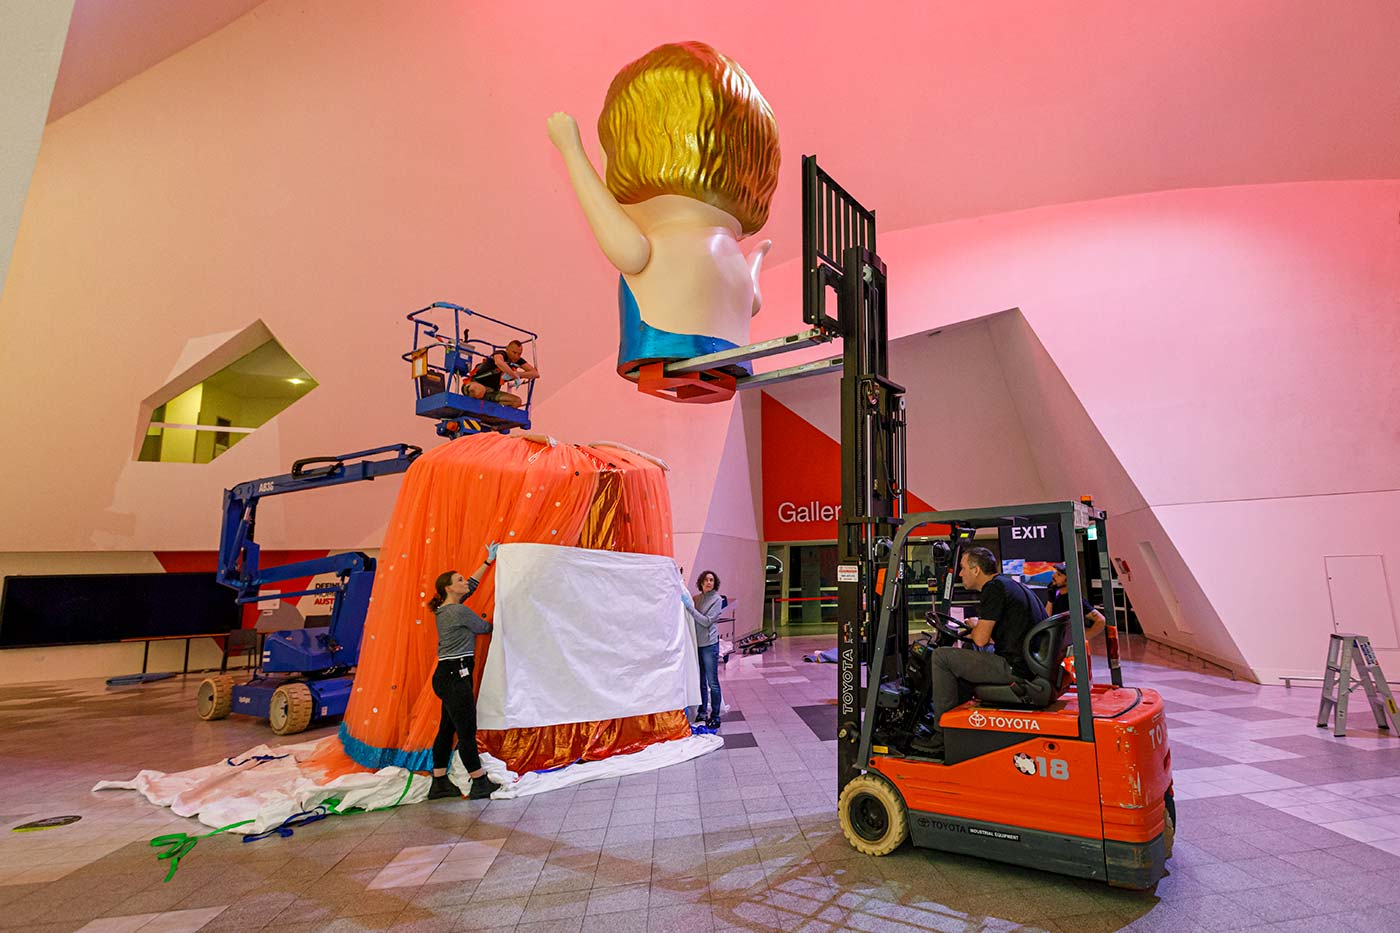 Colour photograph of staff installing a giant kewpie doll in a large hall. - click to view larger image